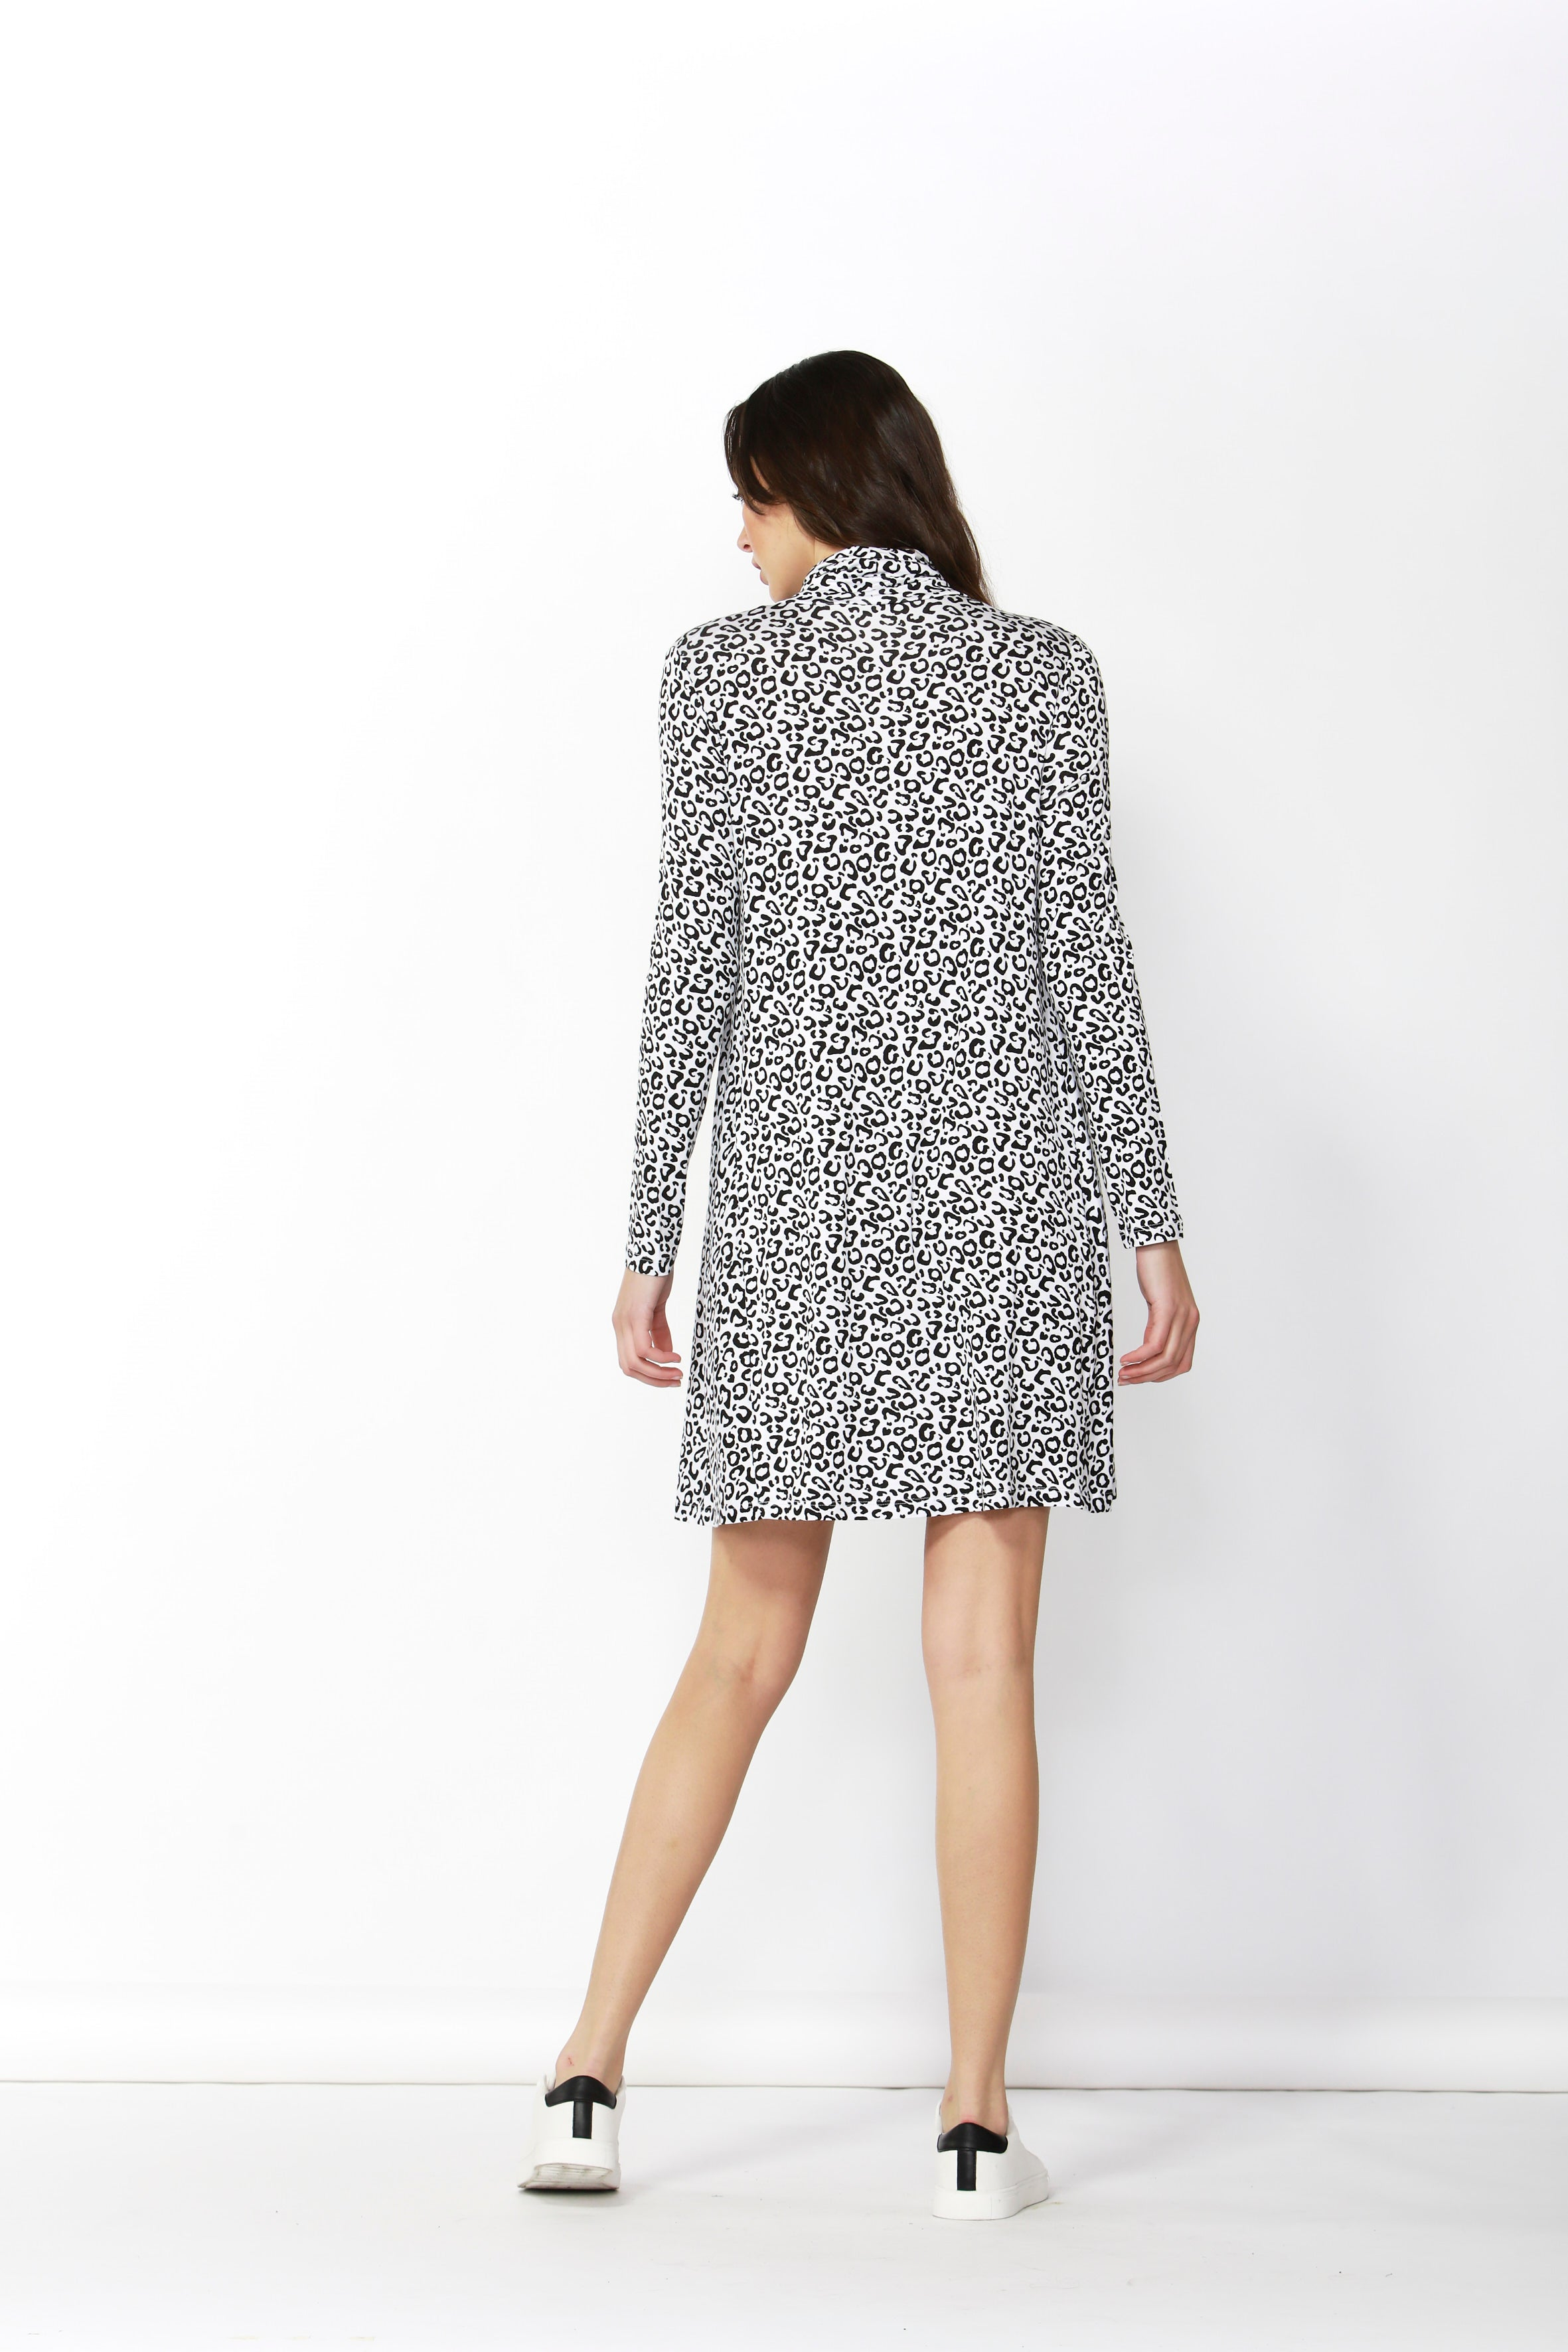 Toronto Dress - White Leopard Print